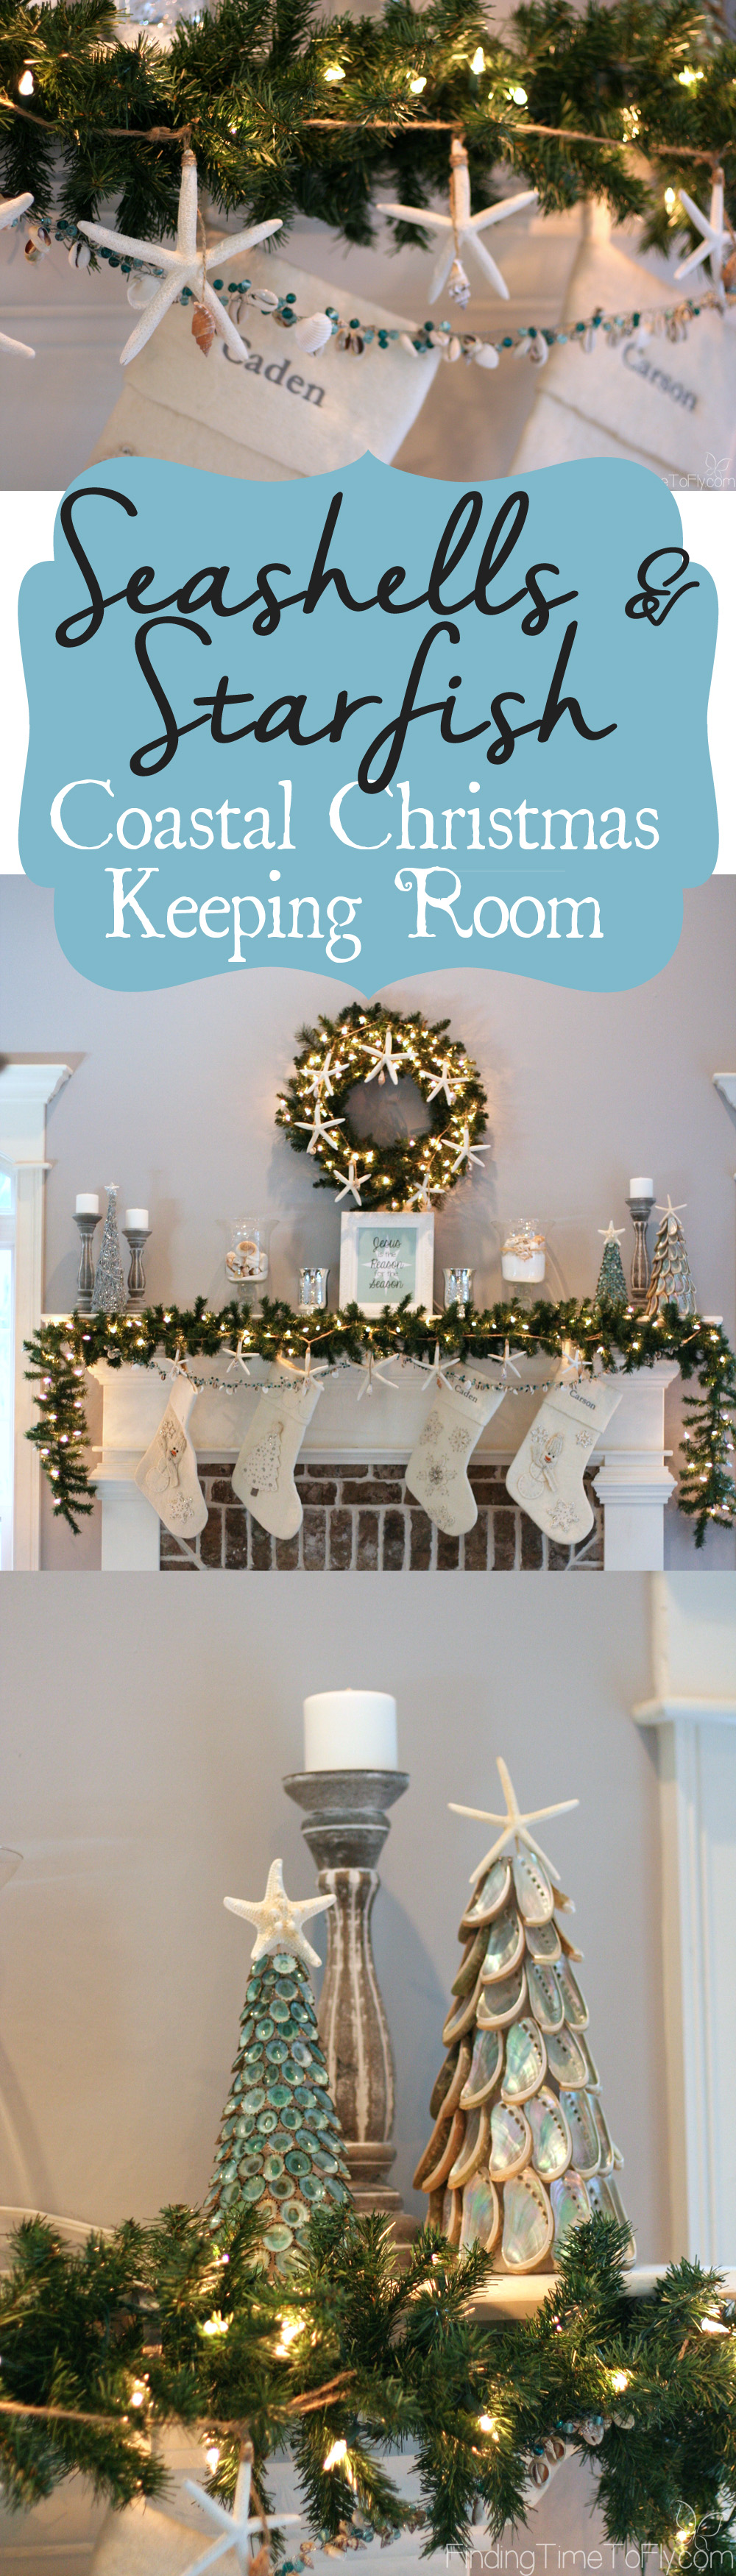 Coastal Christmas Keeping Room With Elegant Fireplace Mantle, Seashell Christmas